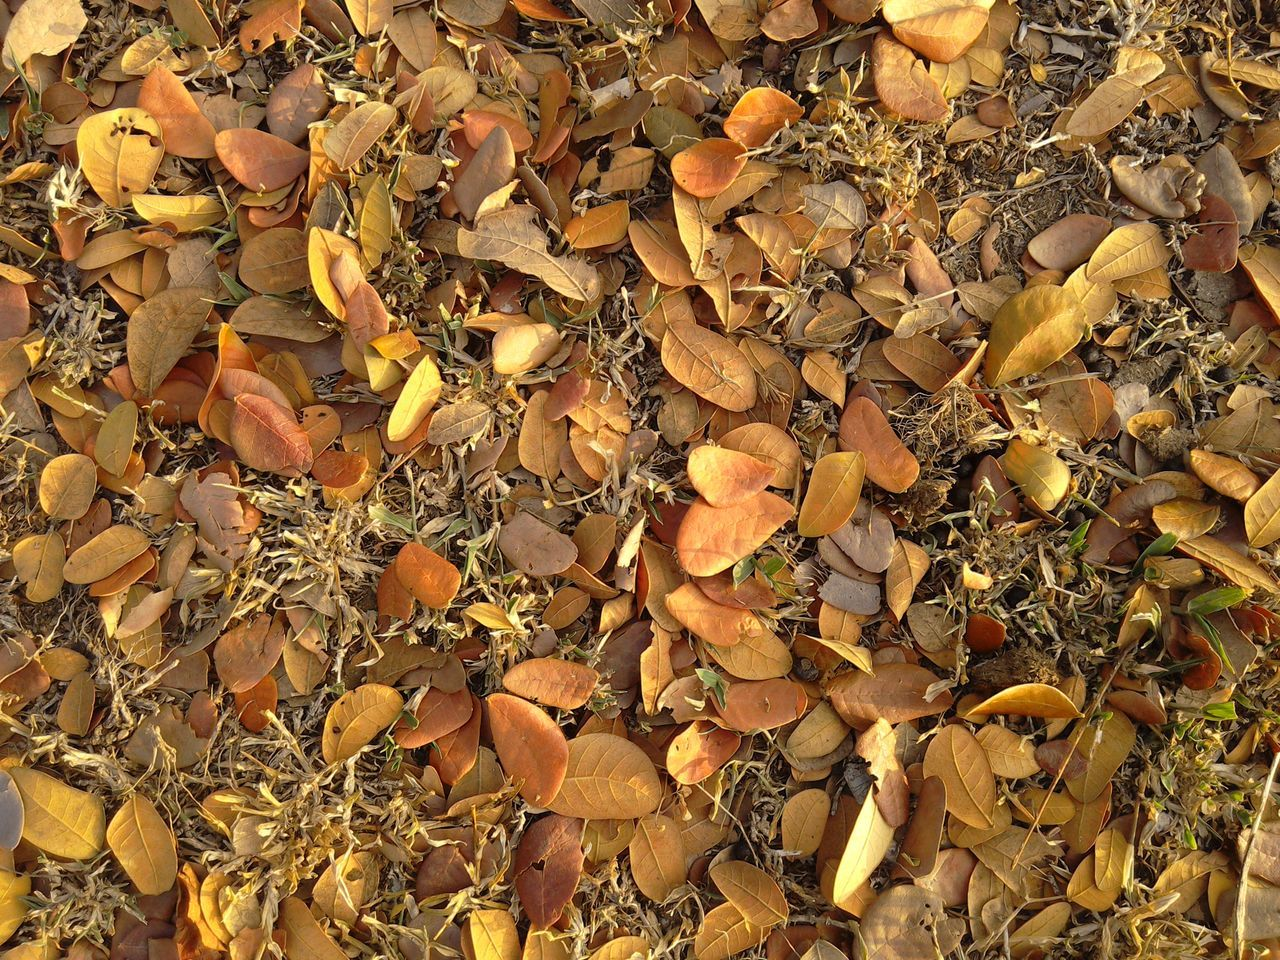 Directly Above View Of Fallen Dry Leaves